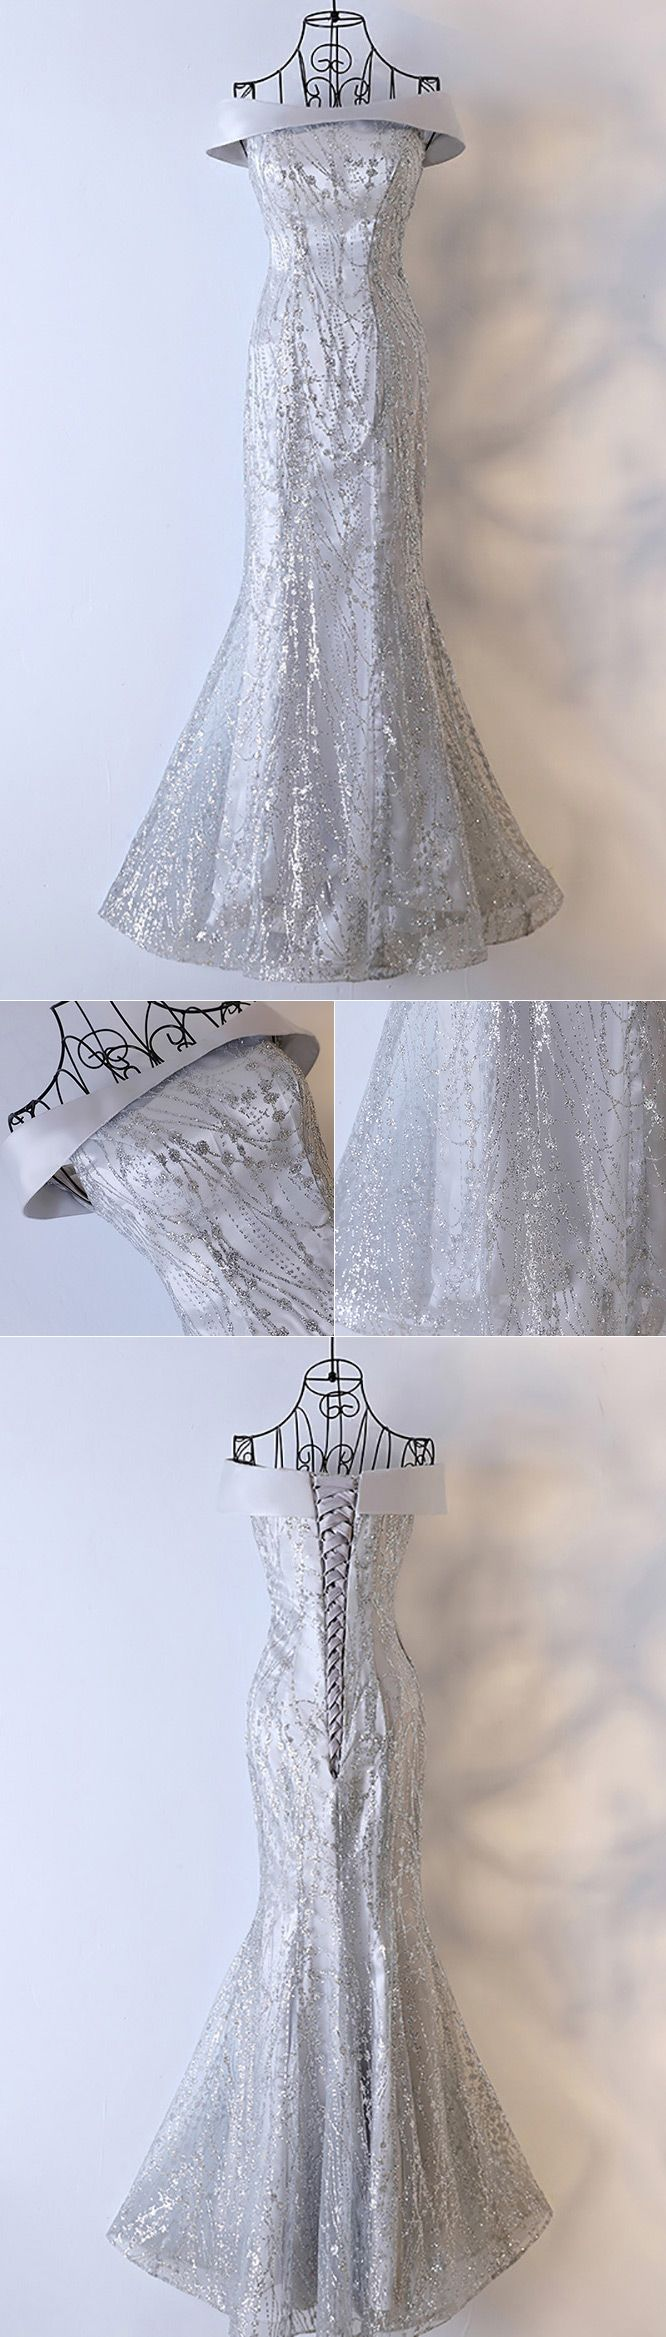 Only $118, Prom Dresses Sparkly Silver Long Mermaid Prom Dress Off The Shoulder #MYX18134 at #GemGrace. View more special Prom Dresses,Evening Dresses now? GemGrace is a solution for those who want to buy delicate gowns with affordable prices, a solution for those who have unique ideas about their gowns. 2018 new arrivals, shop now to get $10 off!